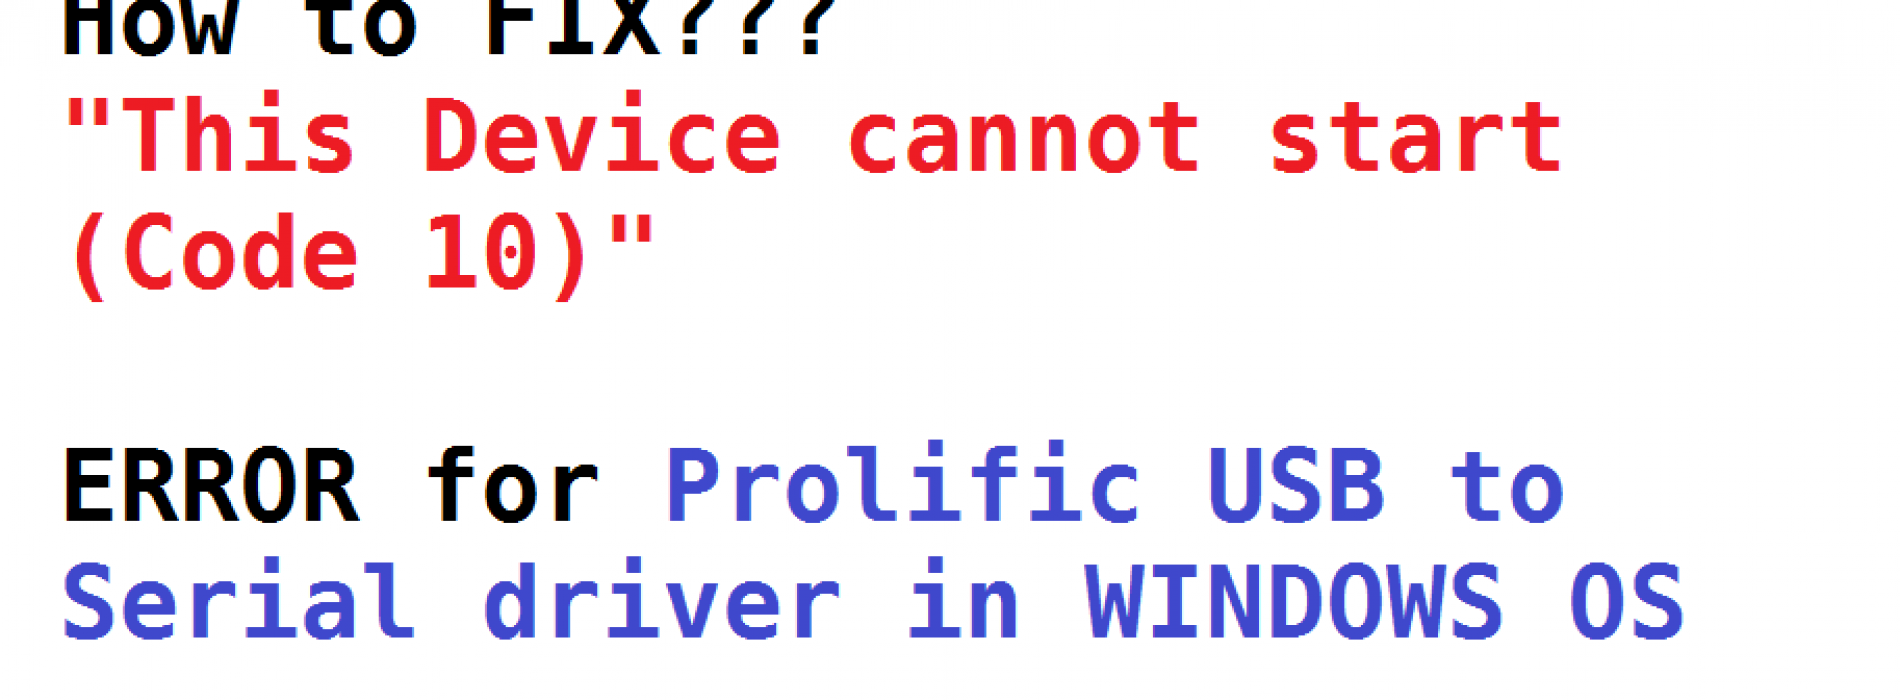 """Prolific USB to serial """"This Device cannot start (Code 10)"""" FIX for WINDOWS"""